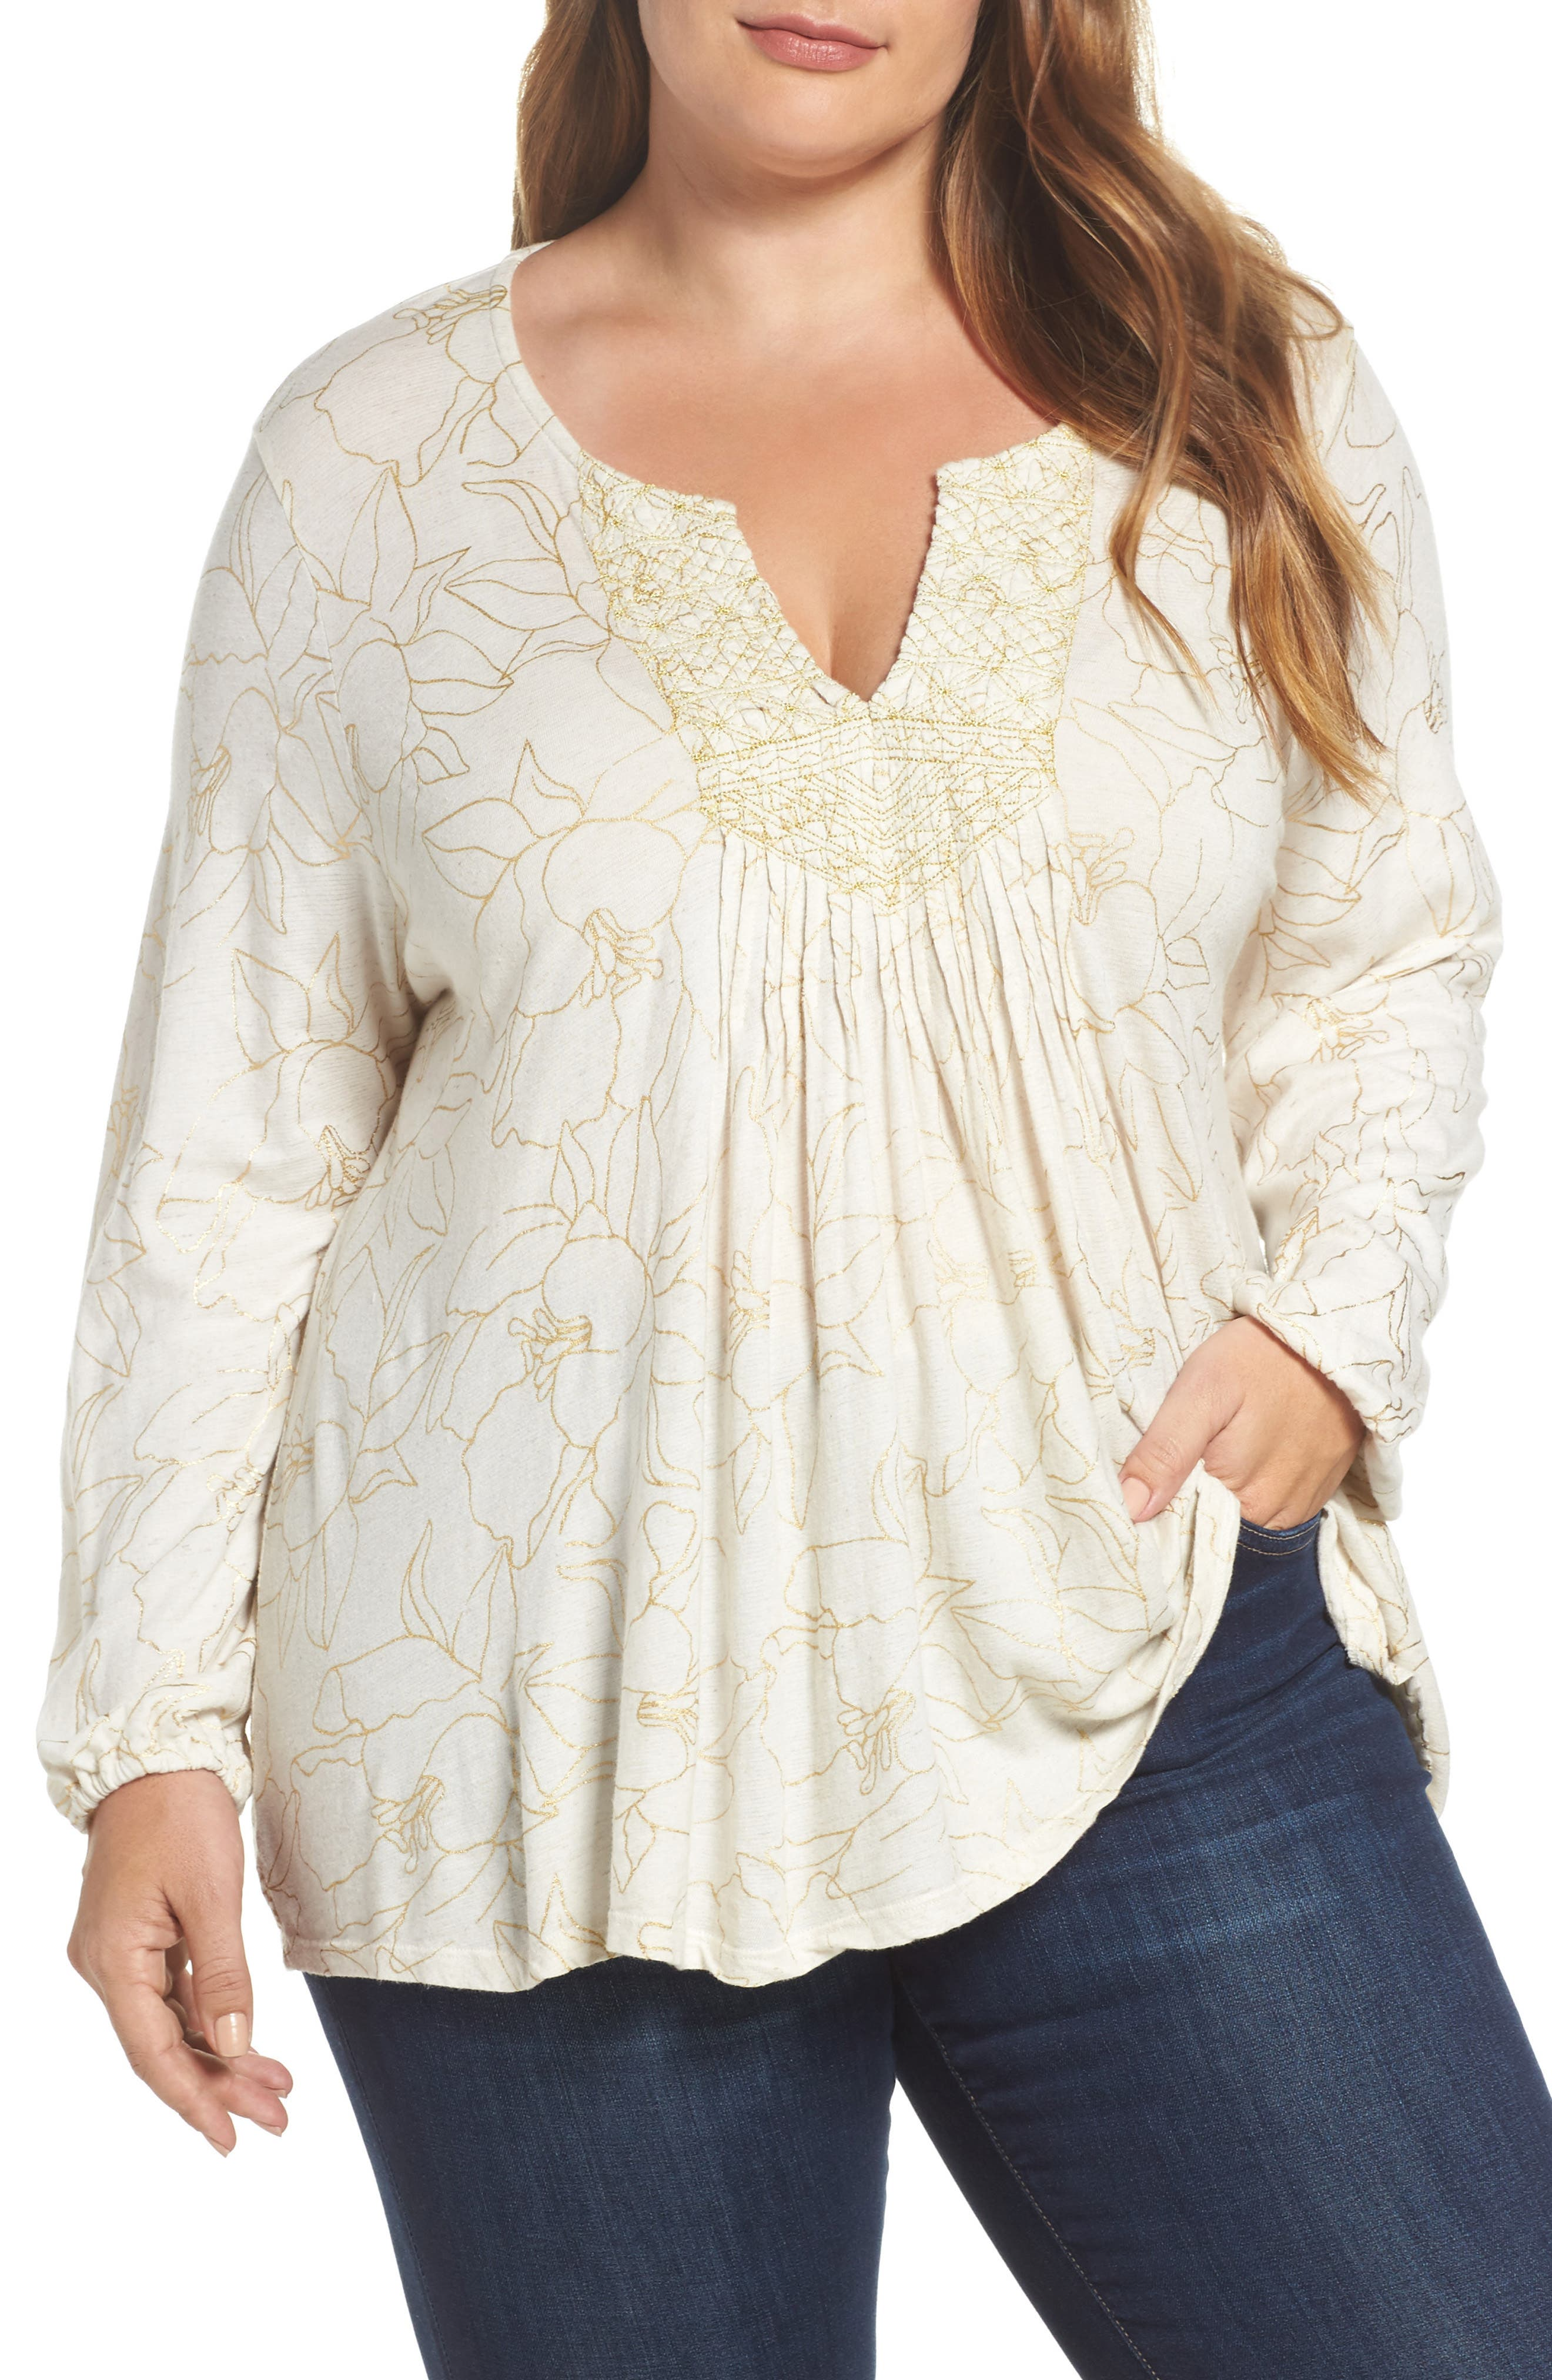 Embroidered Foil Print Top,                             Main thumbnail 1, color,                             Natural Multi